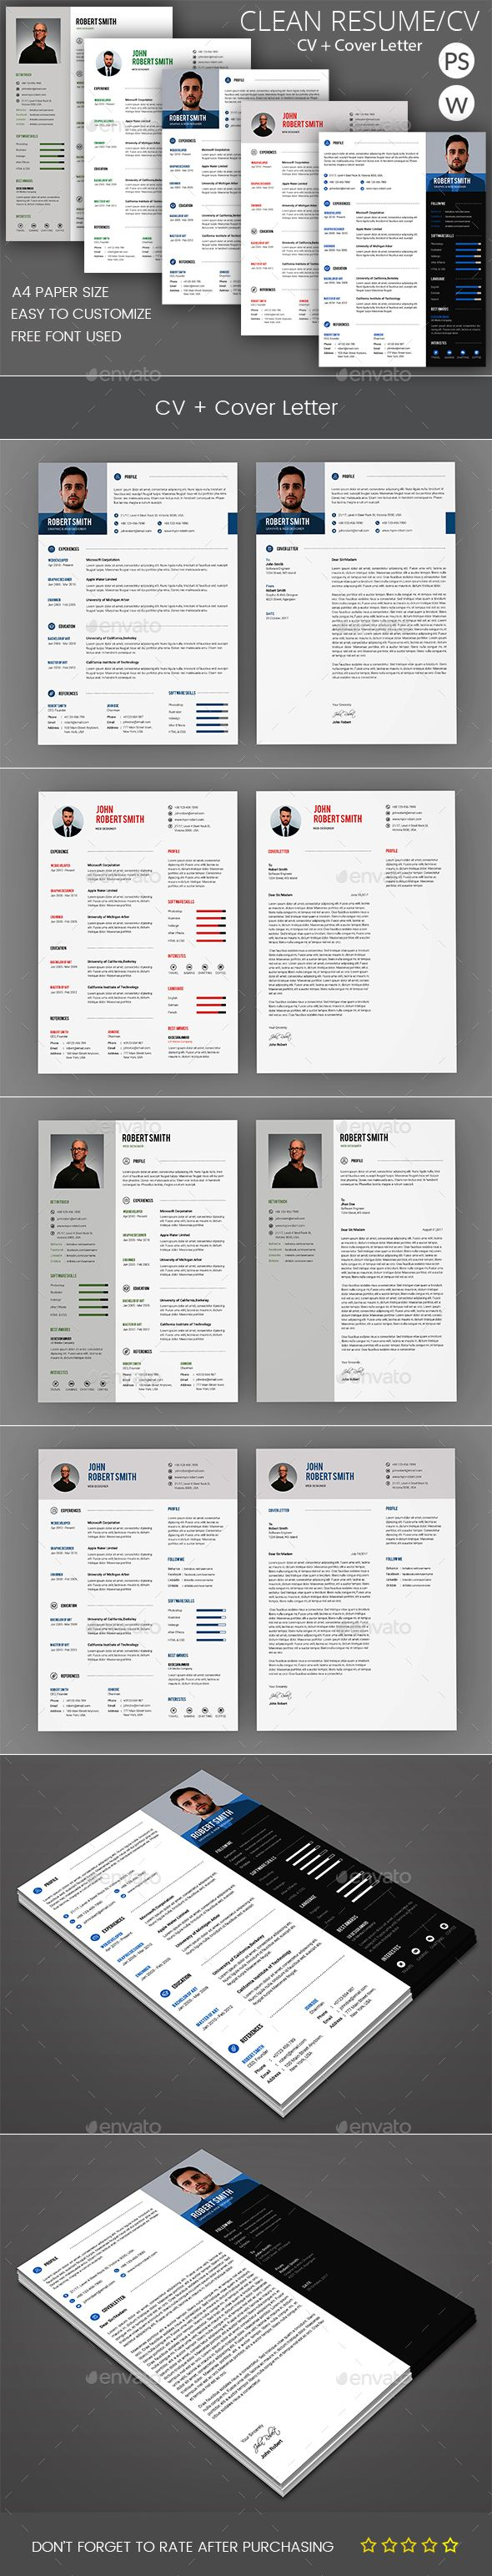 How To Make A Cover Letter For A Resume Clean Resume & Cover Letter Bundle  Pinterest  Resume Cover .